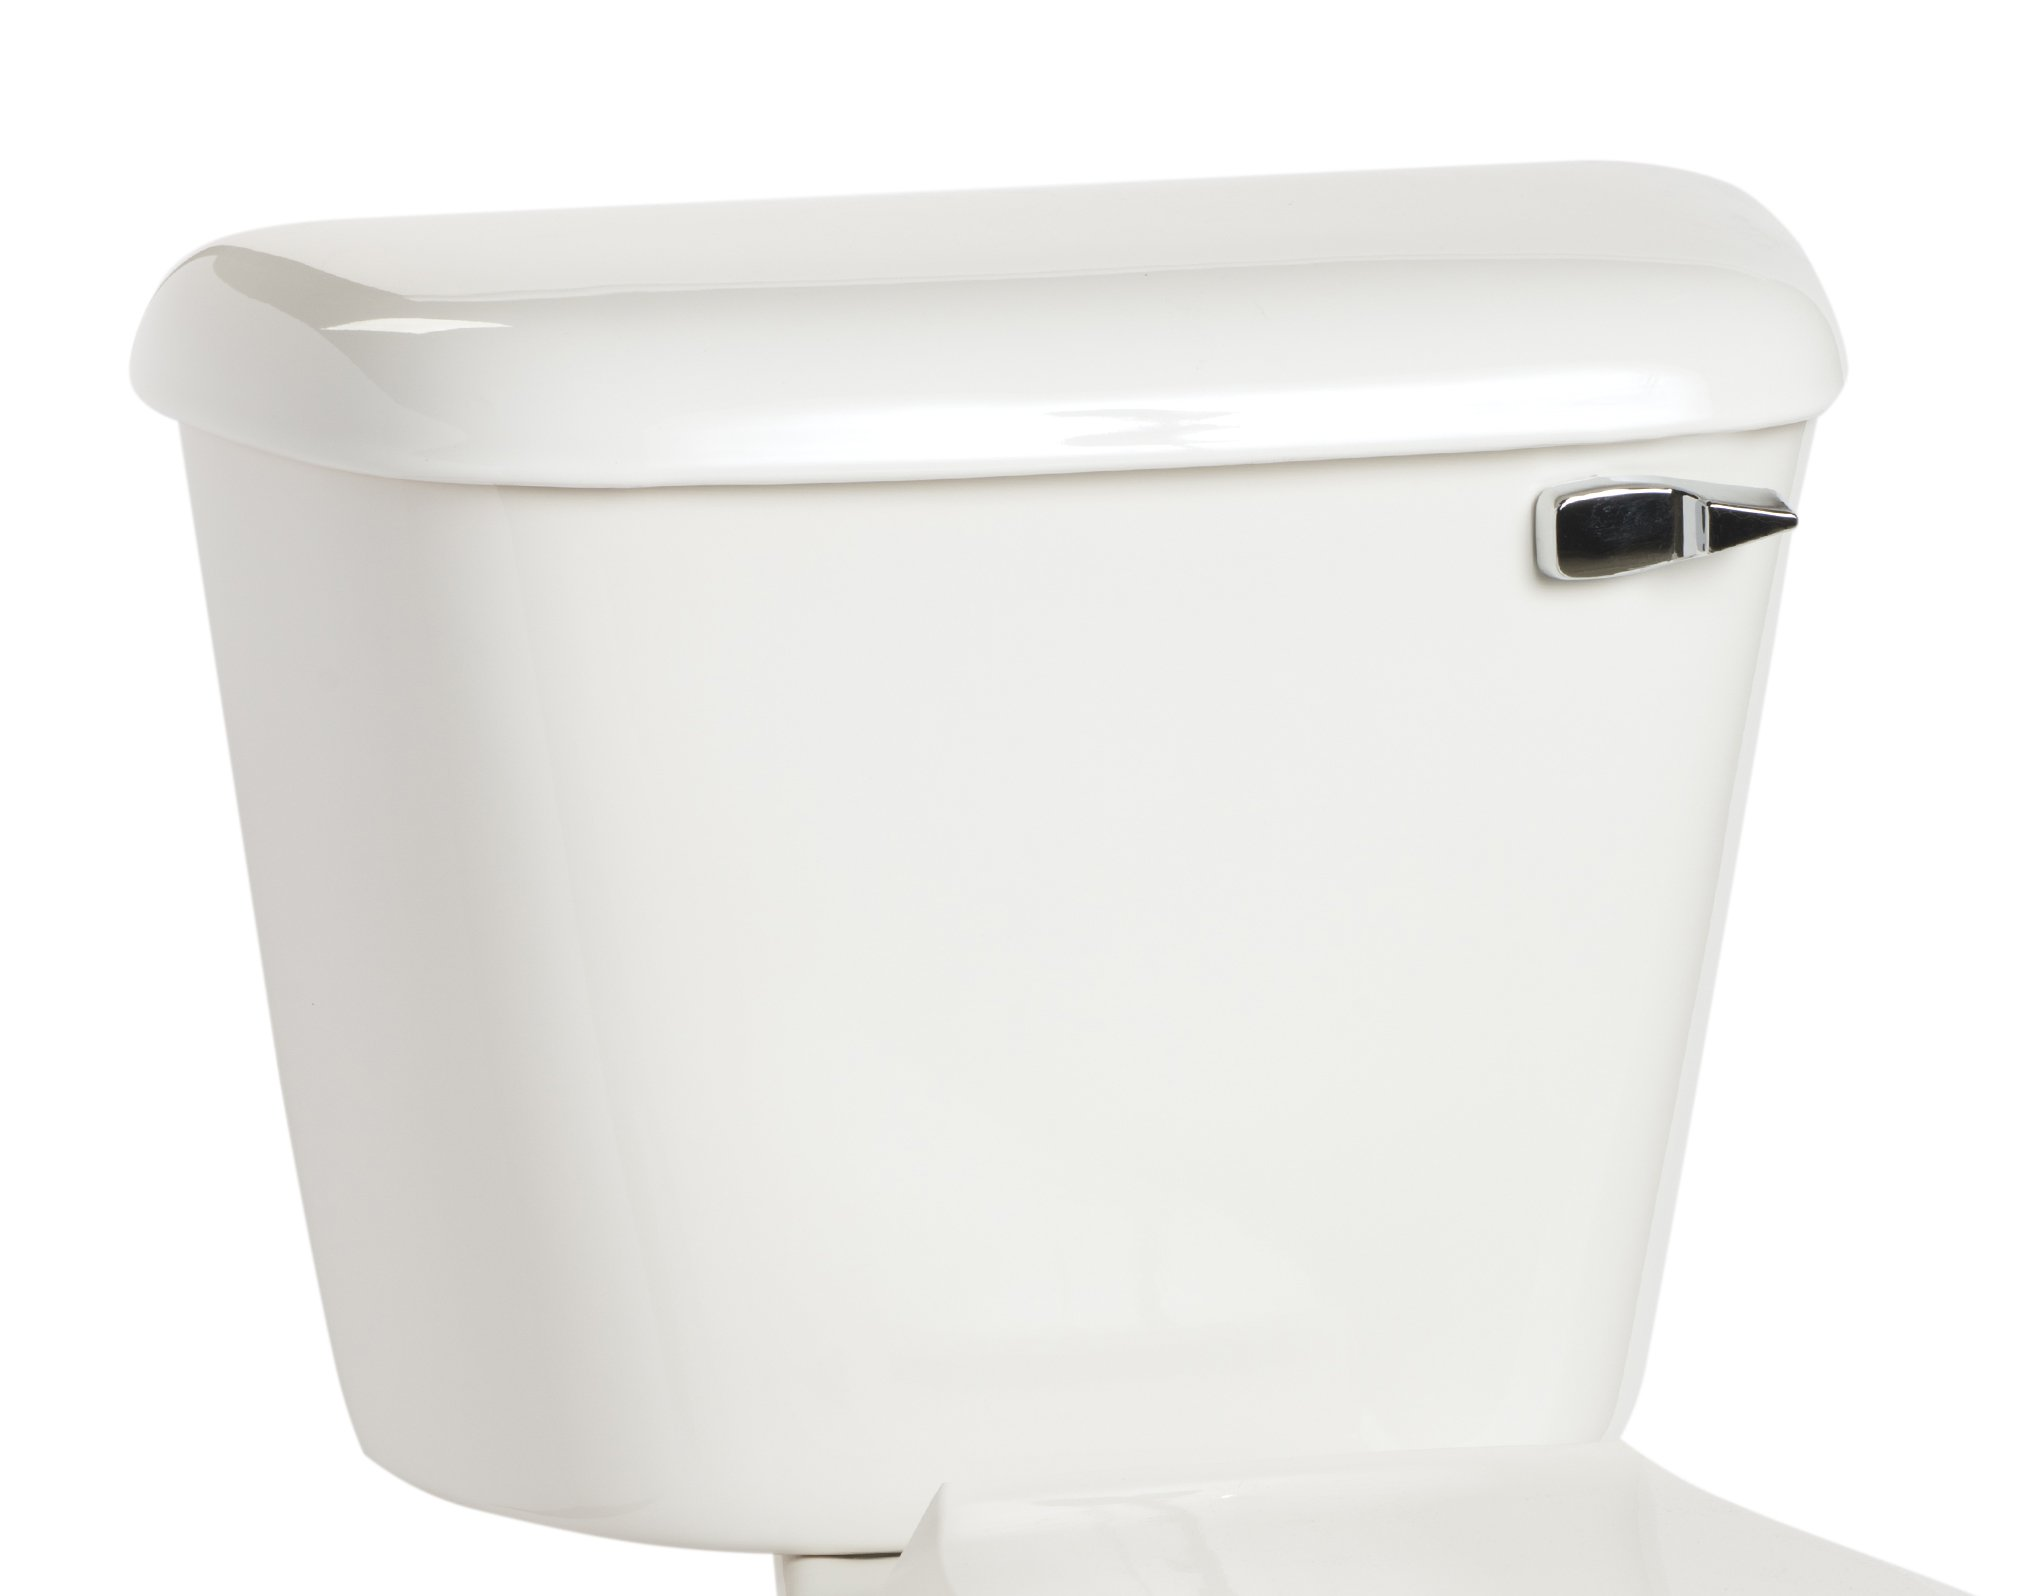 Mansfield Plumbing 160RH Alto 160 Right Hand Tank Lever, White by Mansfield Plumbing